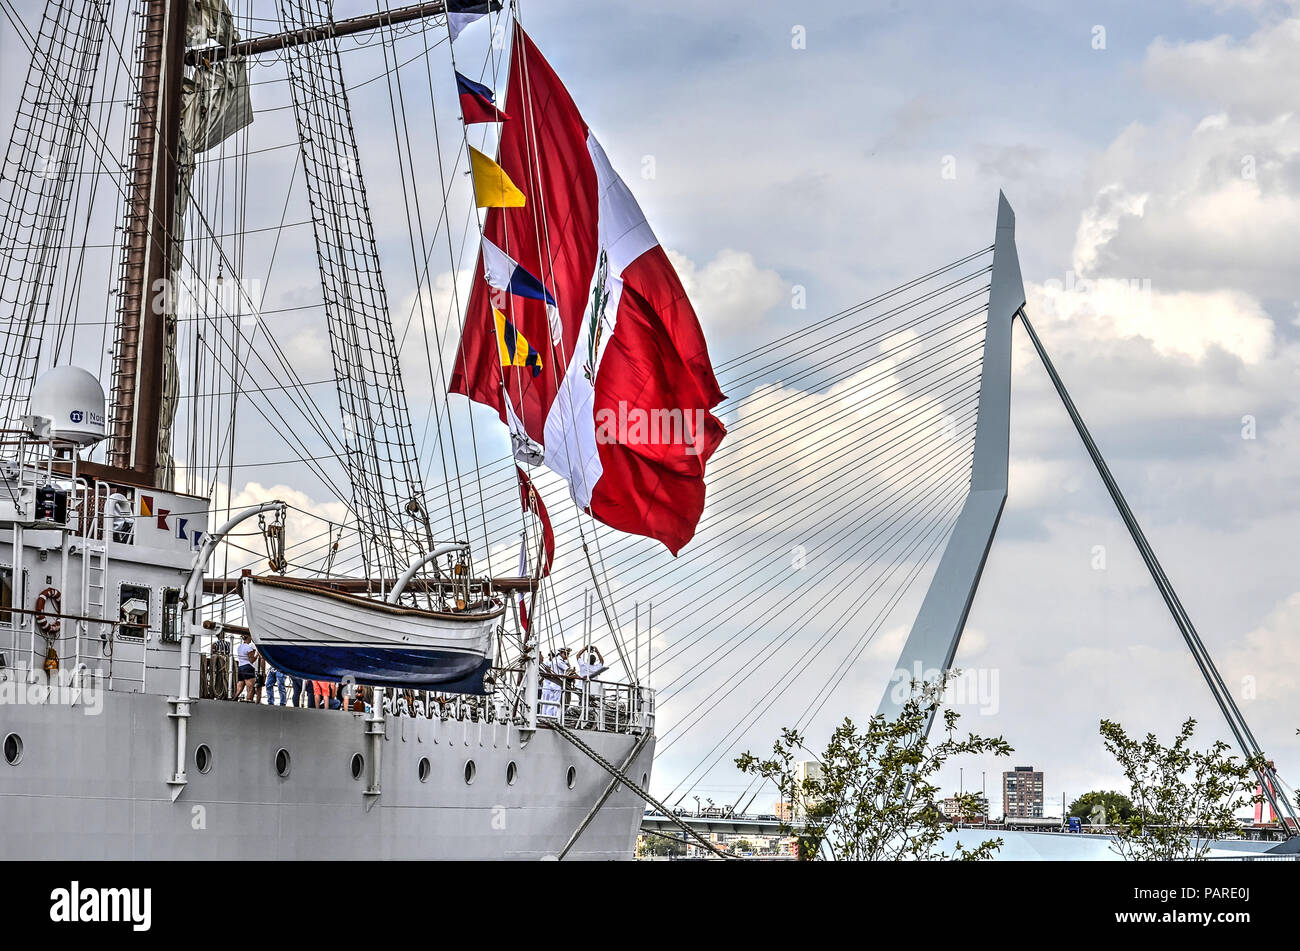 Rotterdam, The Netherlands, August 9, 2017: four-masted Peruvian navy ship Bap Union carrying large flag, moored at Wilhelminapier with Erasmusbridge  - Stock Image